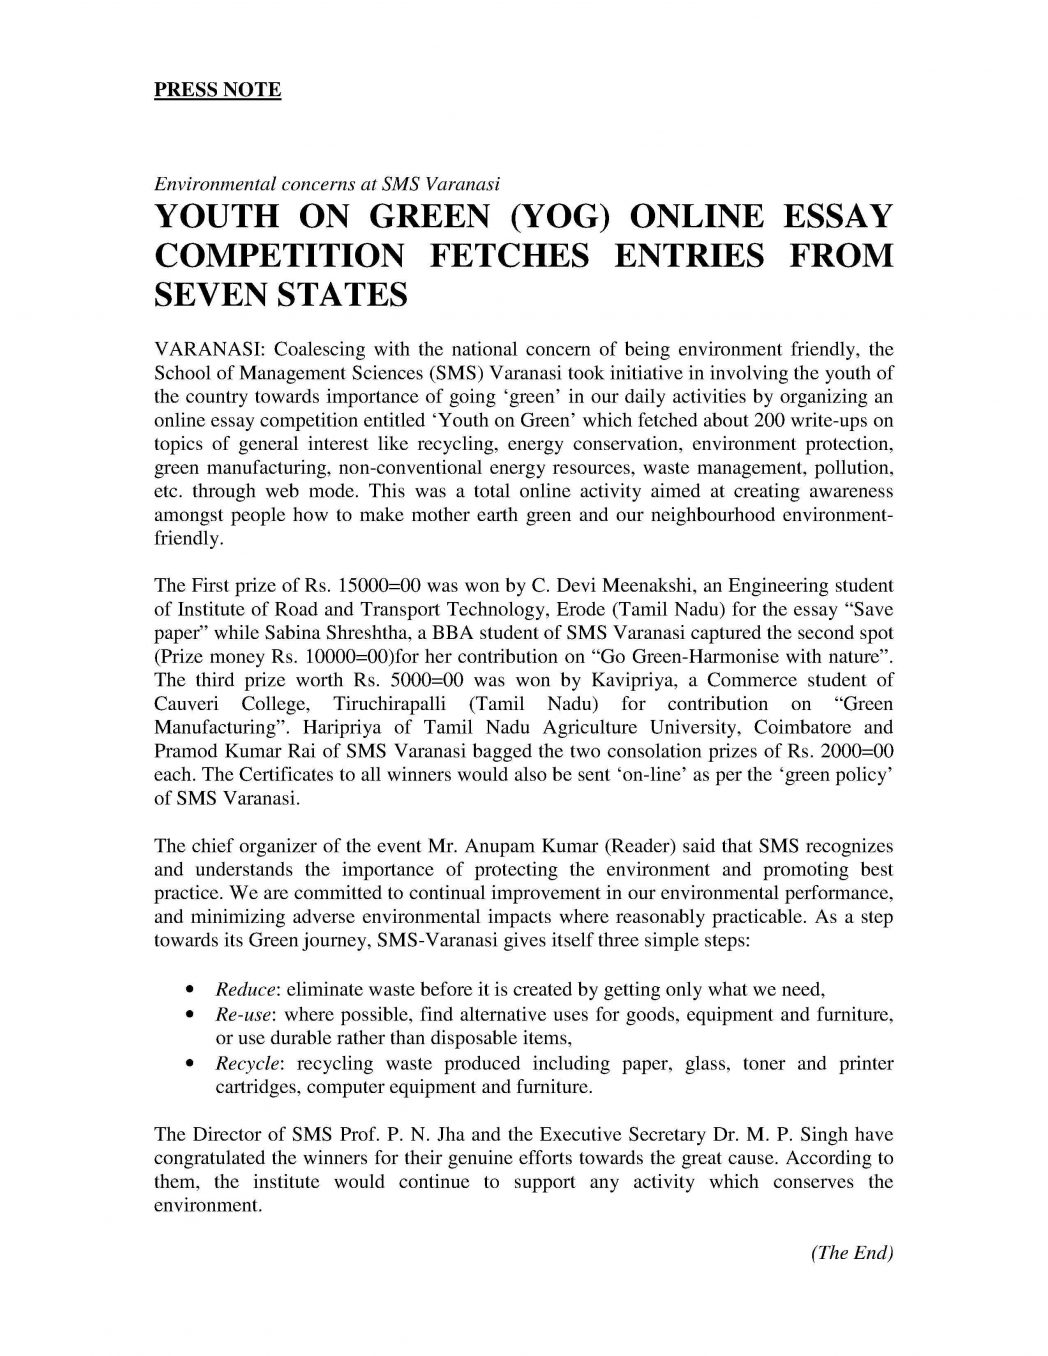 020 Best Essays For College Essay On Good Habits How Tot Application Online Yog Press Re About Yourself Examples Your Background Failure Prompt Off Hook 1048x1356 Example Amazing To Start An Can I A Book Observation With Quote Full